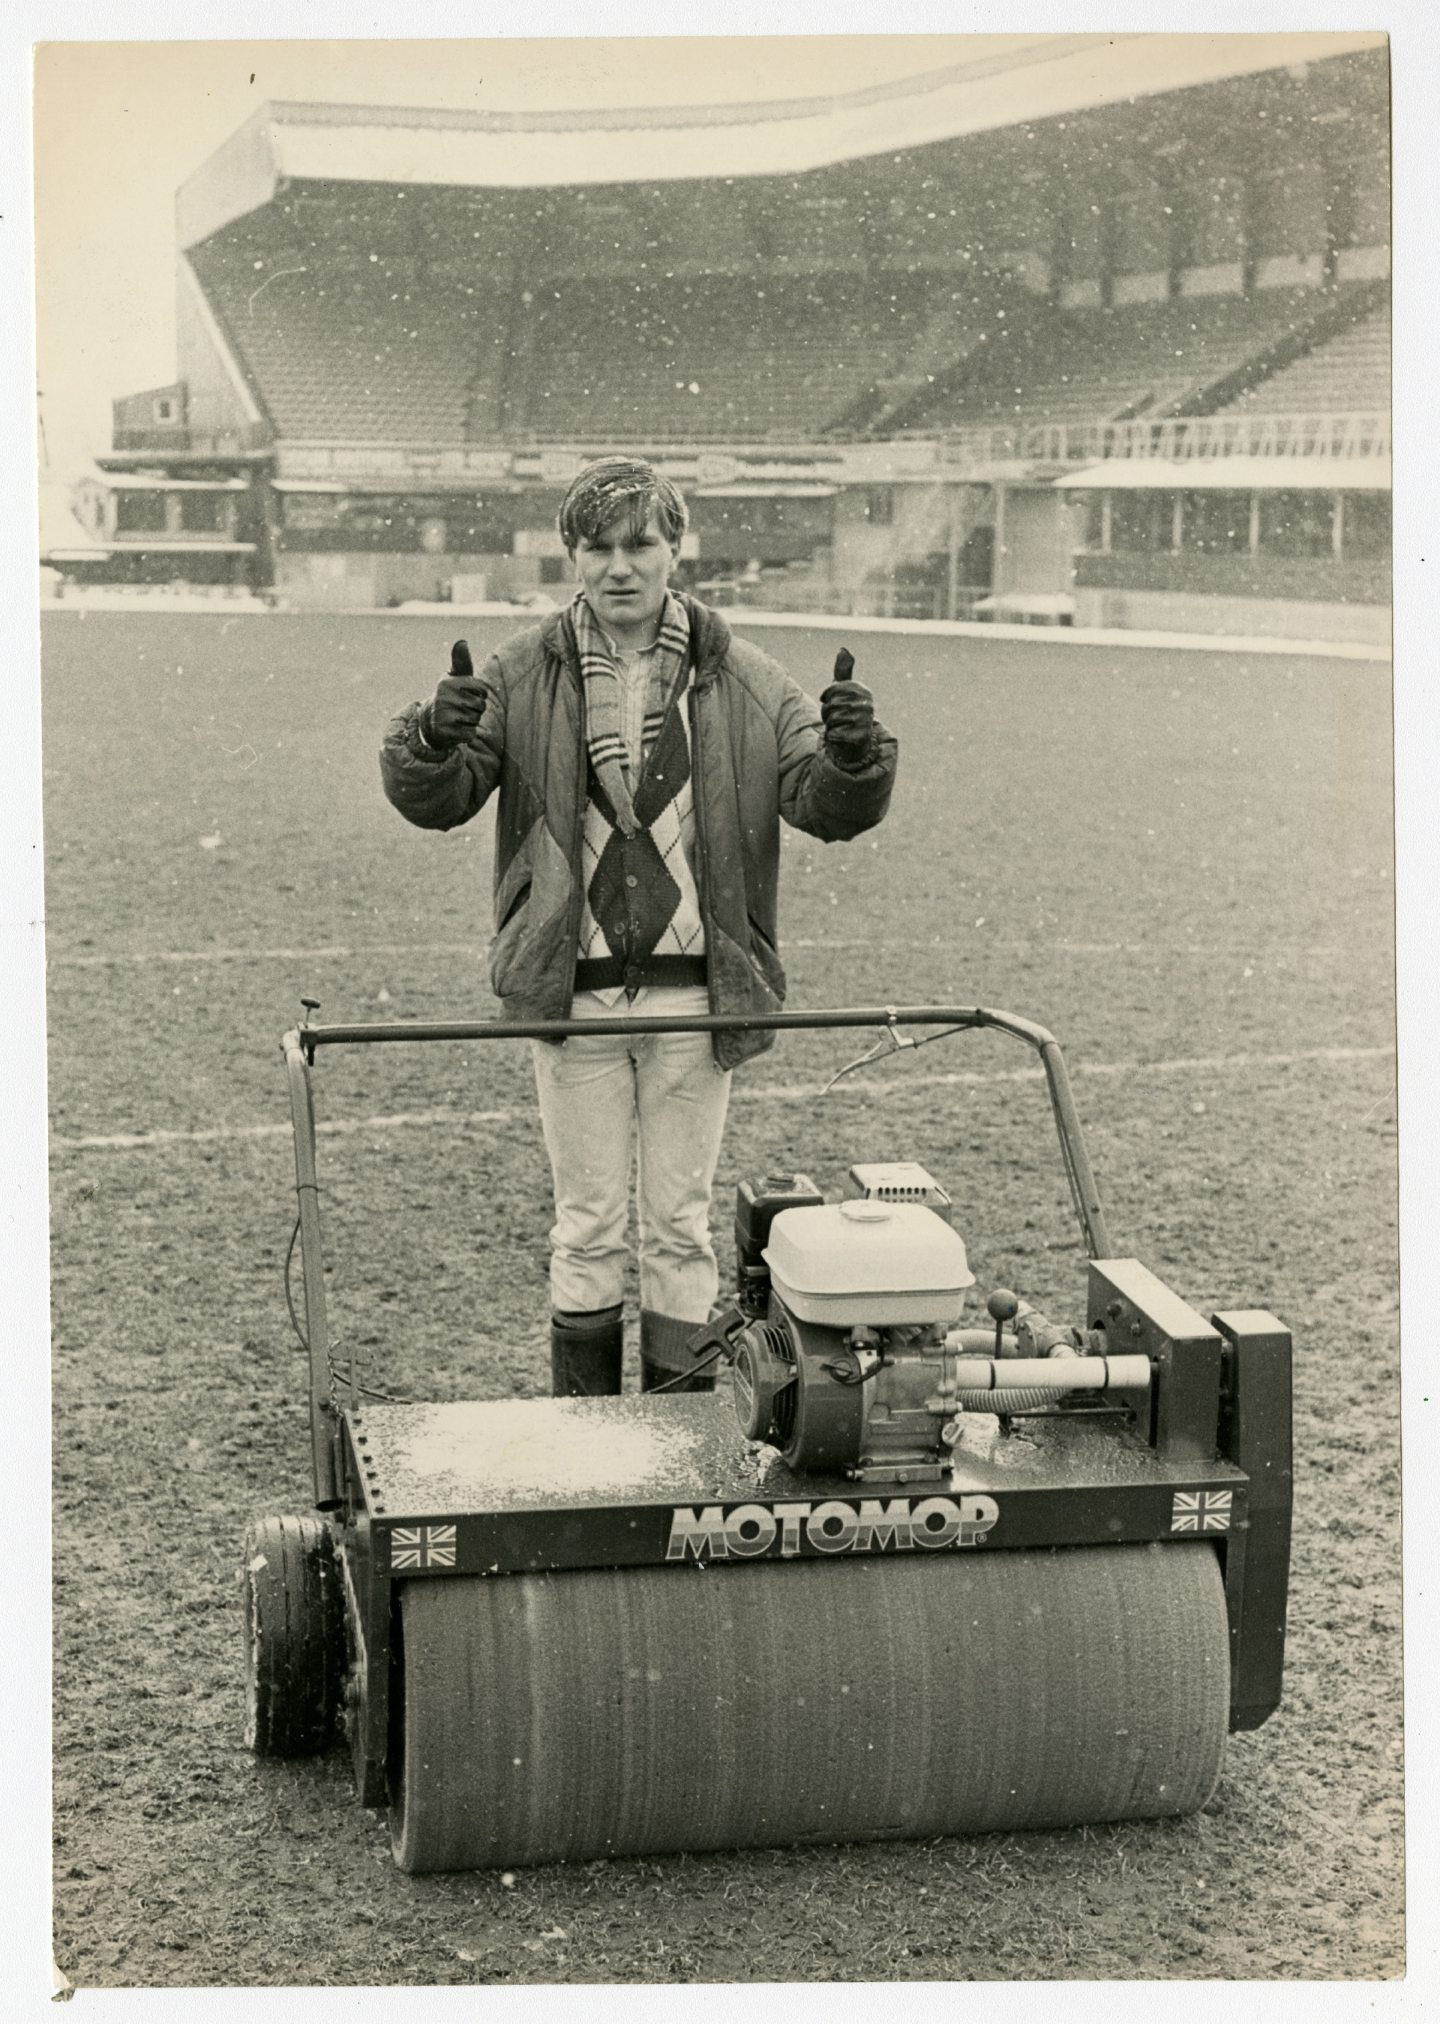 Tannadice groundsman James Fox giving the thumbs up after going over the the pitch with the club's motomop in February 1986.